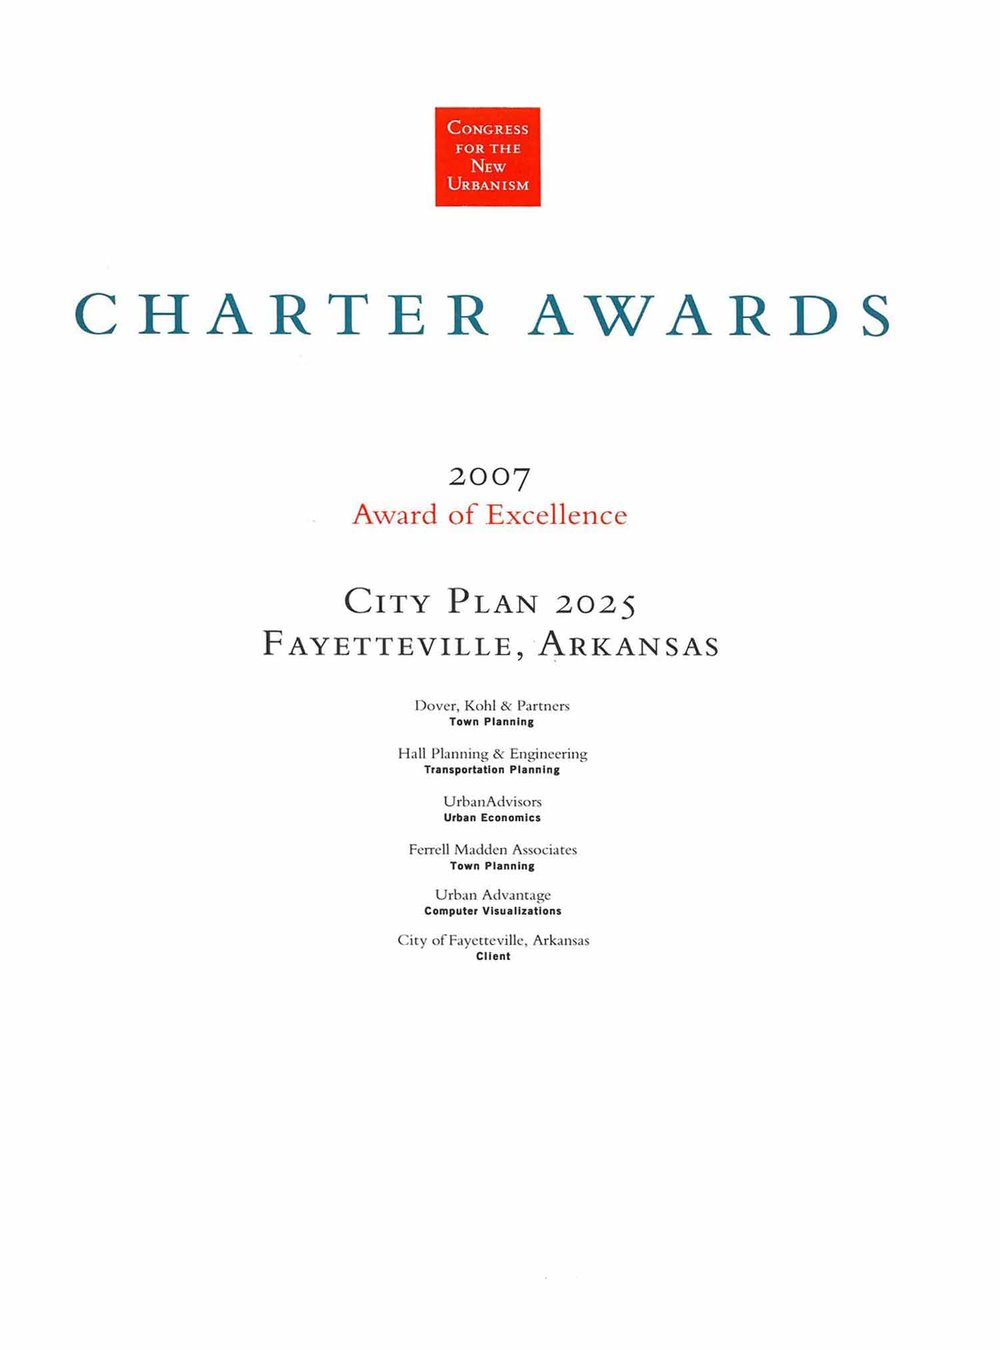 2007-Chapter Awars- of exellence-City PLan 2025- Fayetteville.jpg